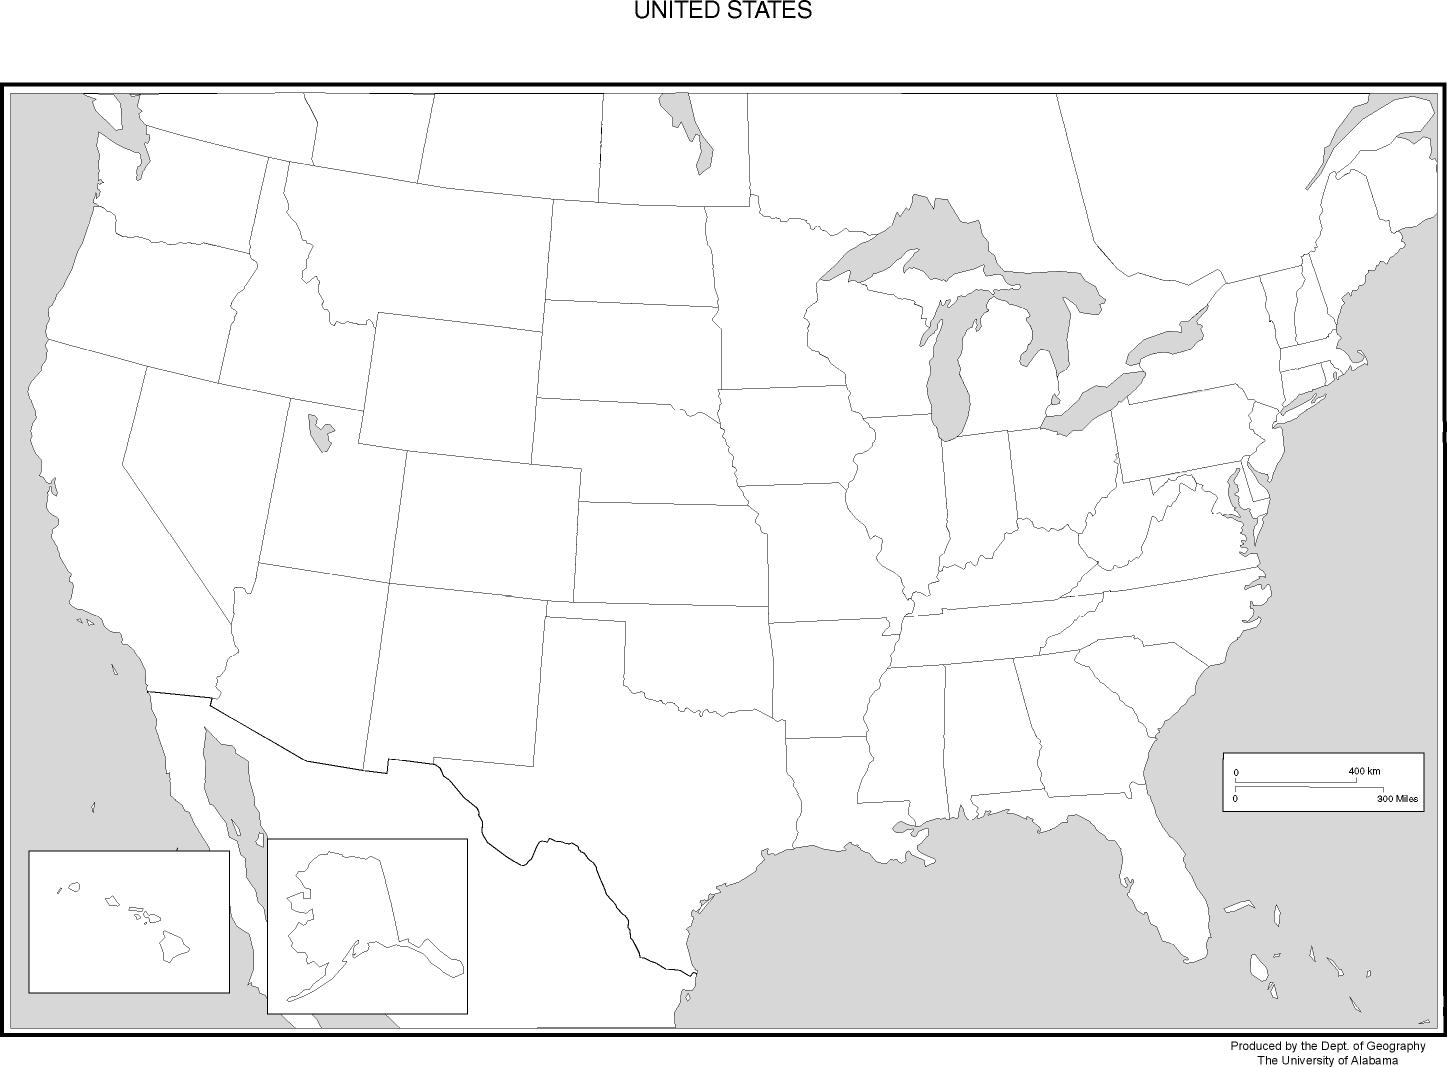 Find Map USA Here Maps Of United States Part Printable Usa - Find the us states on a blank map